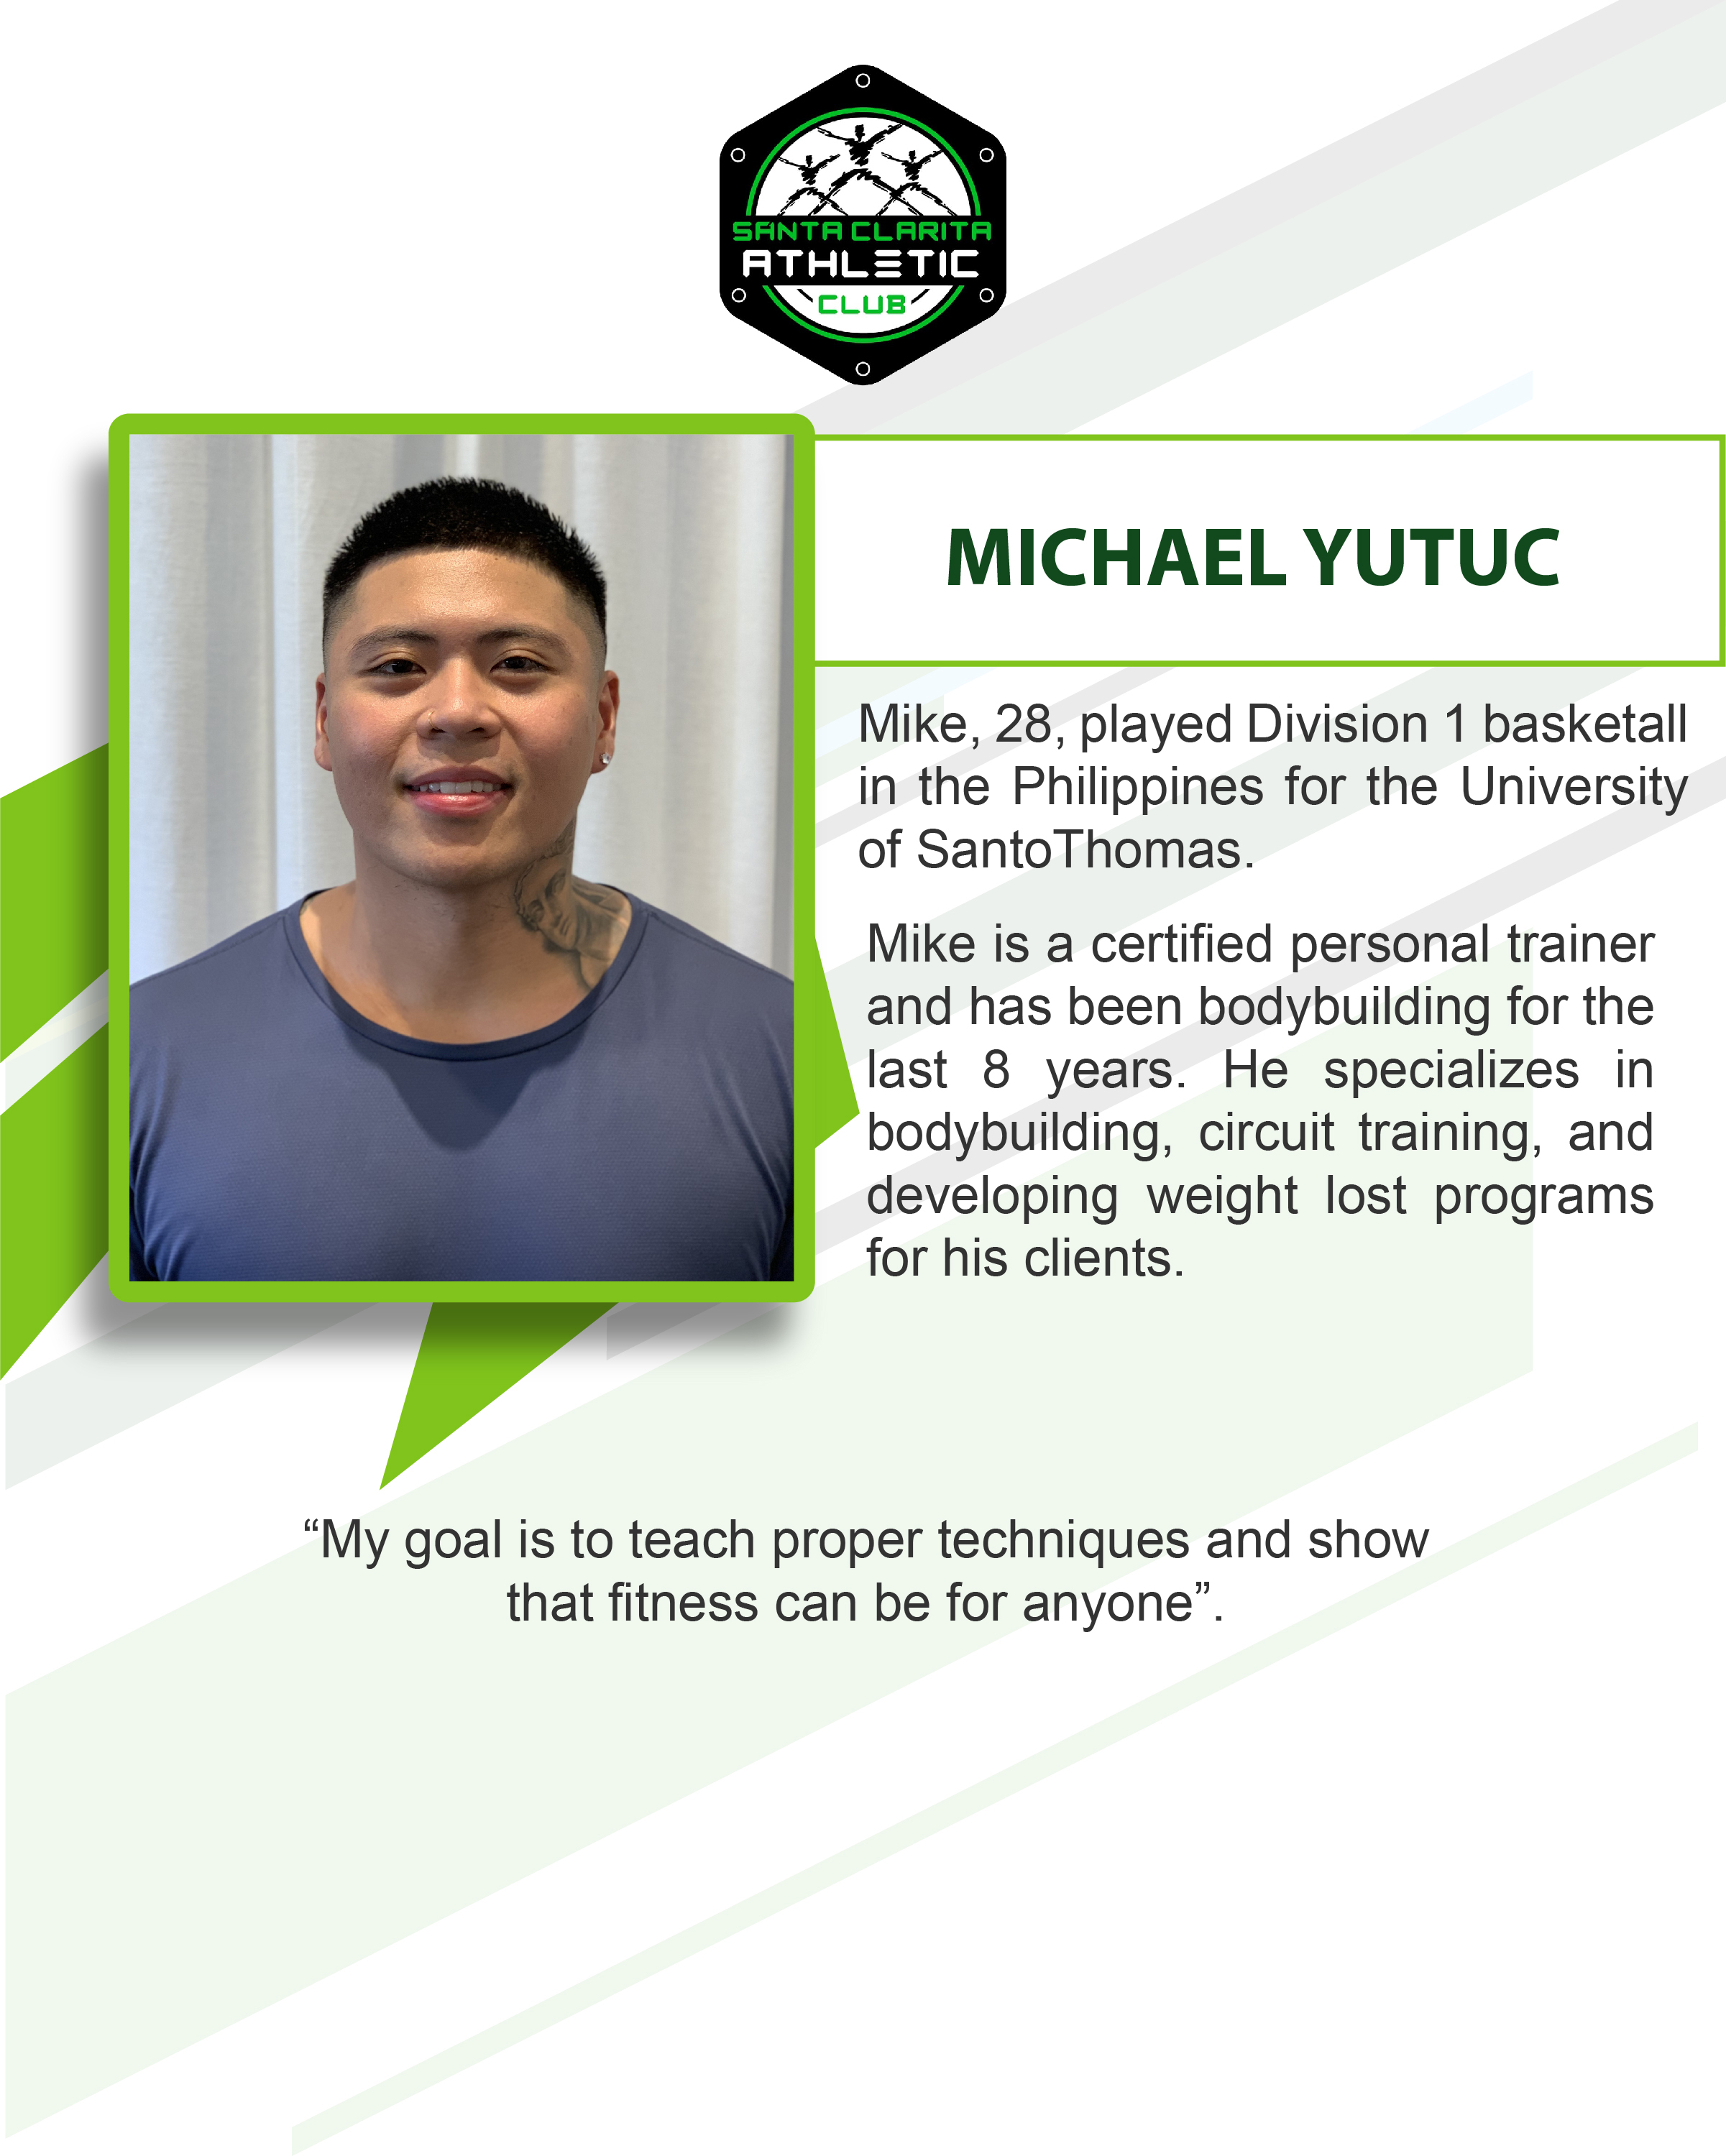 Michael Yutuc - Certified Personal Trainer